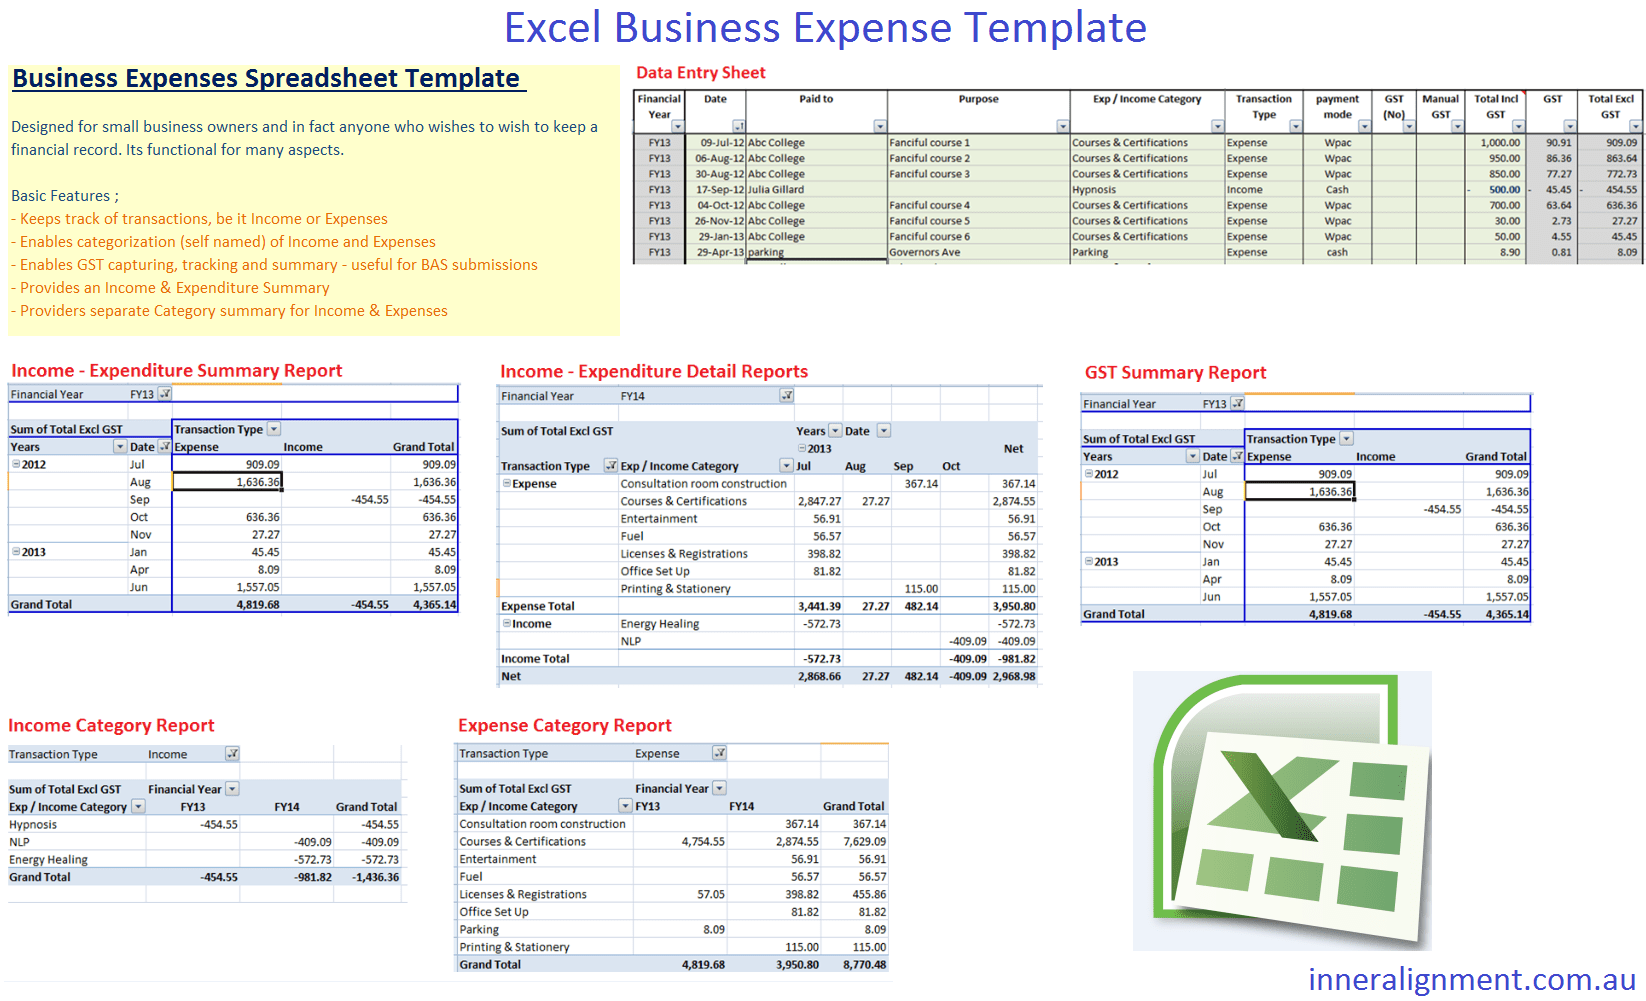 Excel Free Business Expense Template Inner Alignment